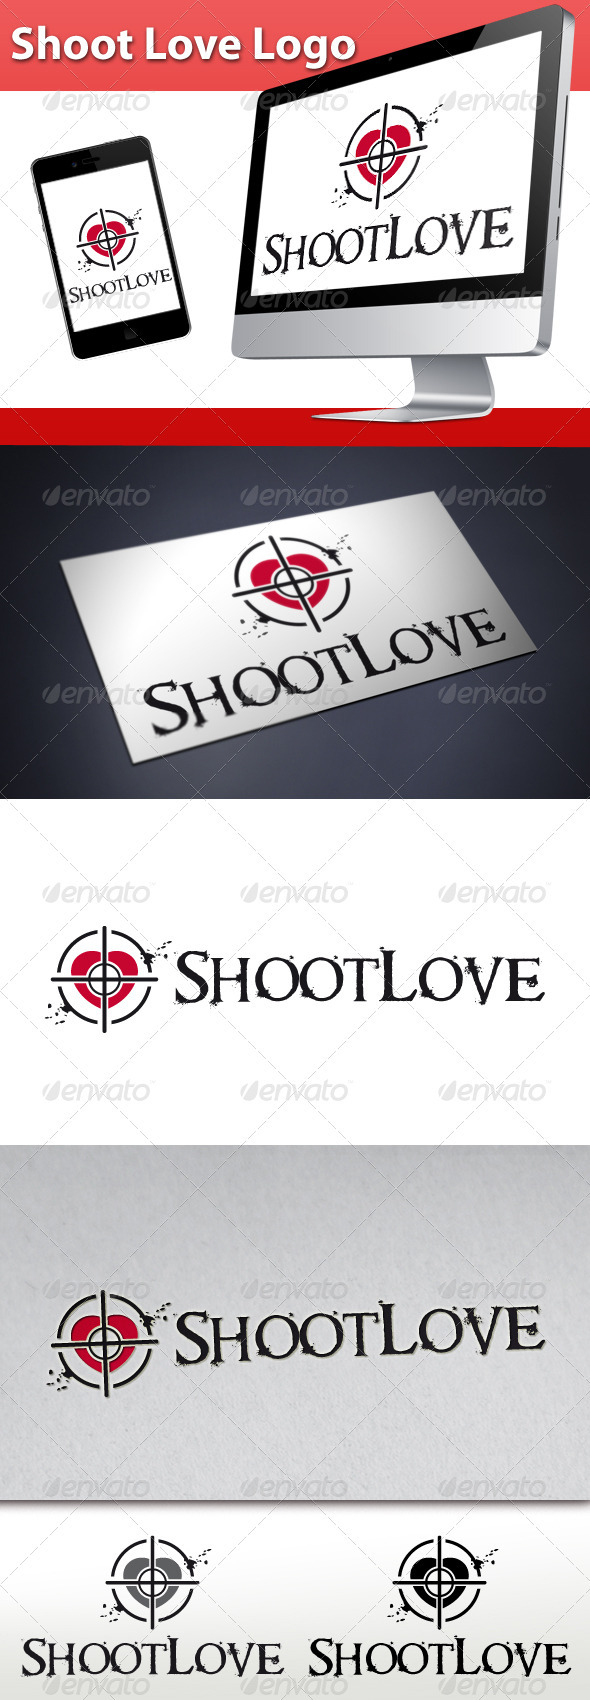 GraphicRiver Shoot Love Logo 3327979